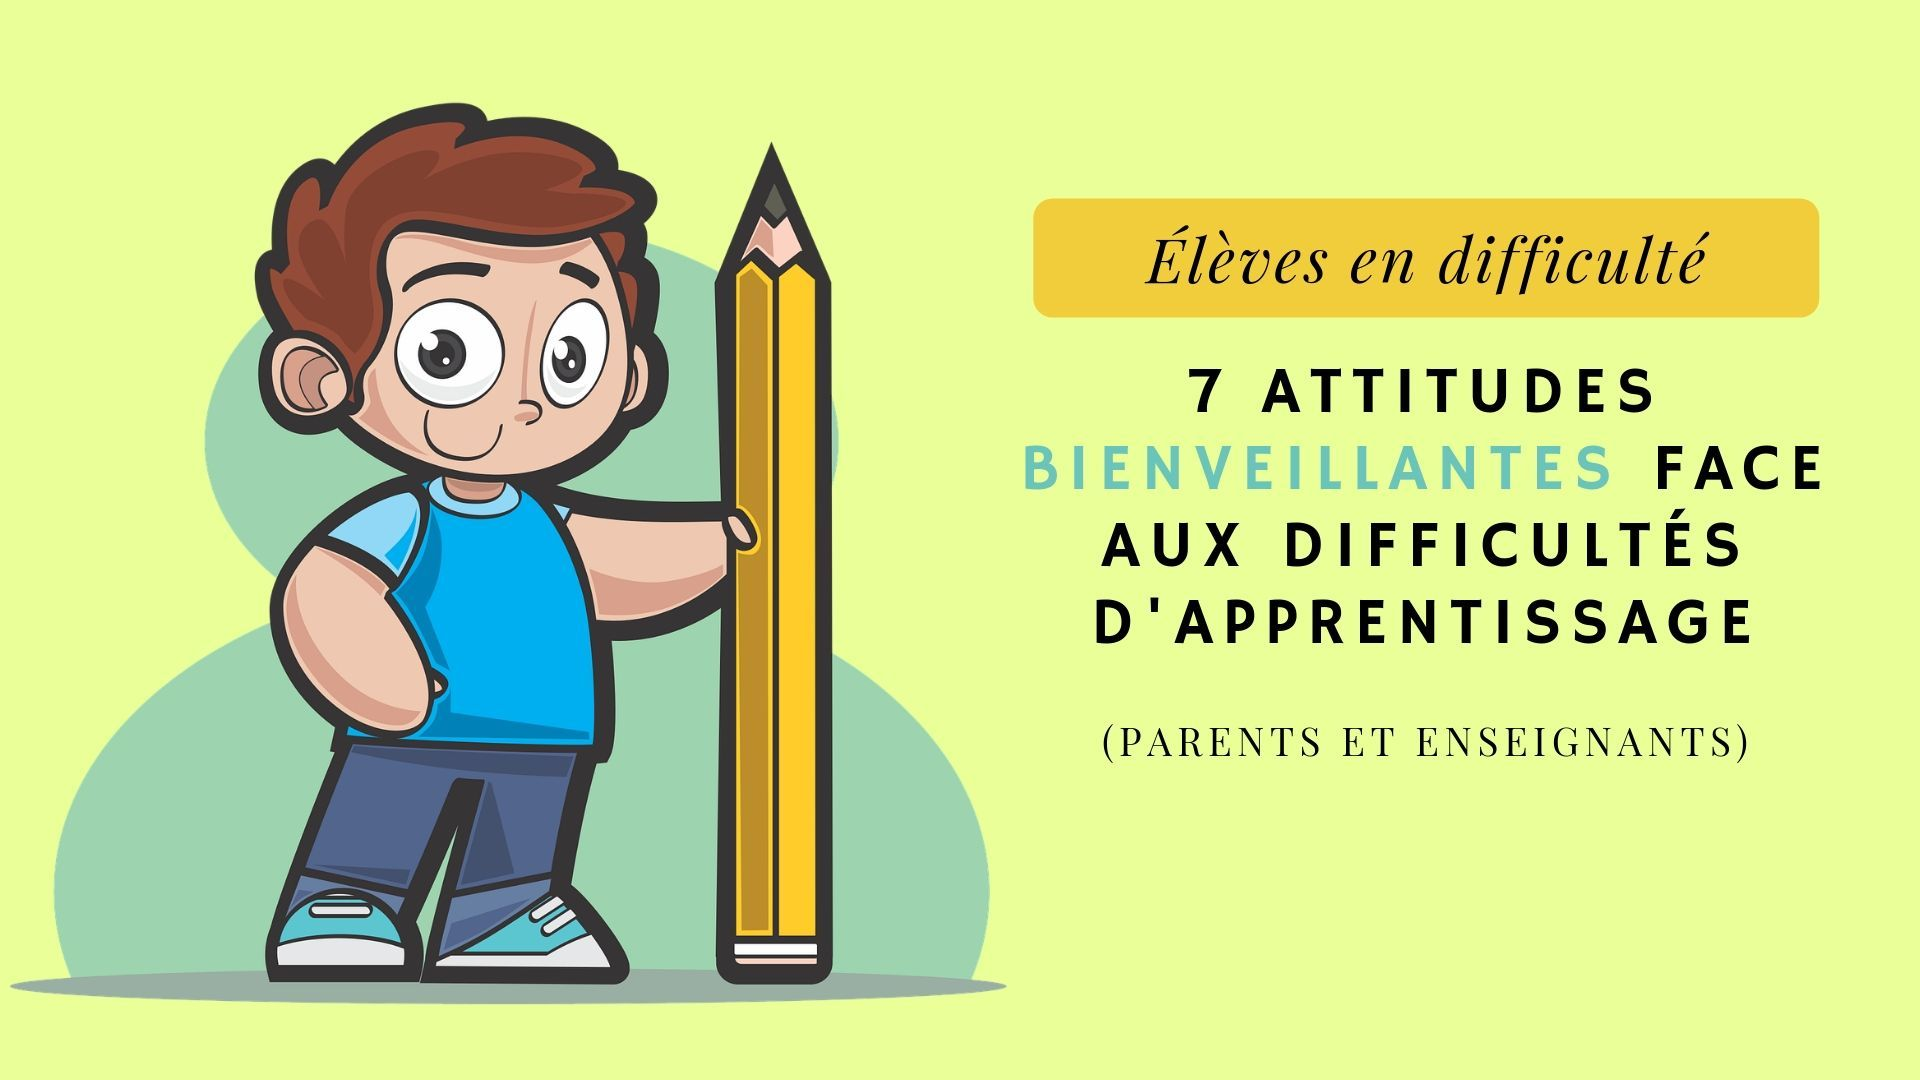 Eleves En Difficulte 7 Attitudes Bienveillantes Face Aux Difficultes D Apprentissage Parents Et Enseignants Enseignement Apprentissage Phobie Scolaire